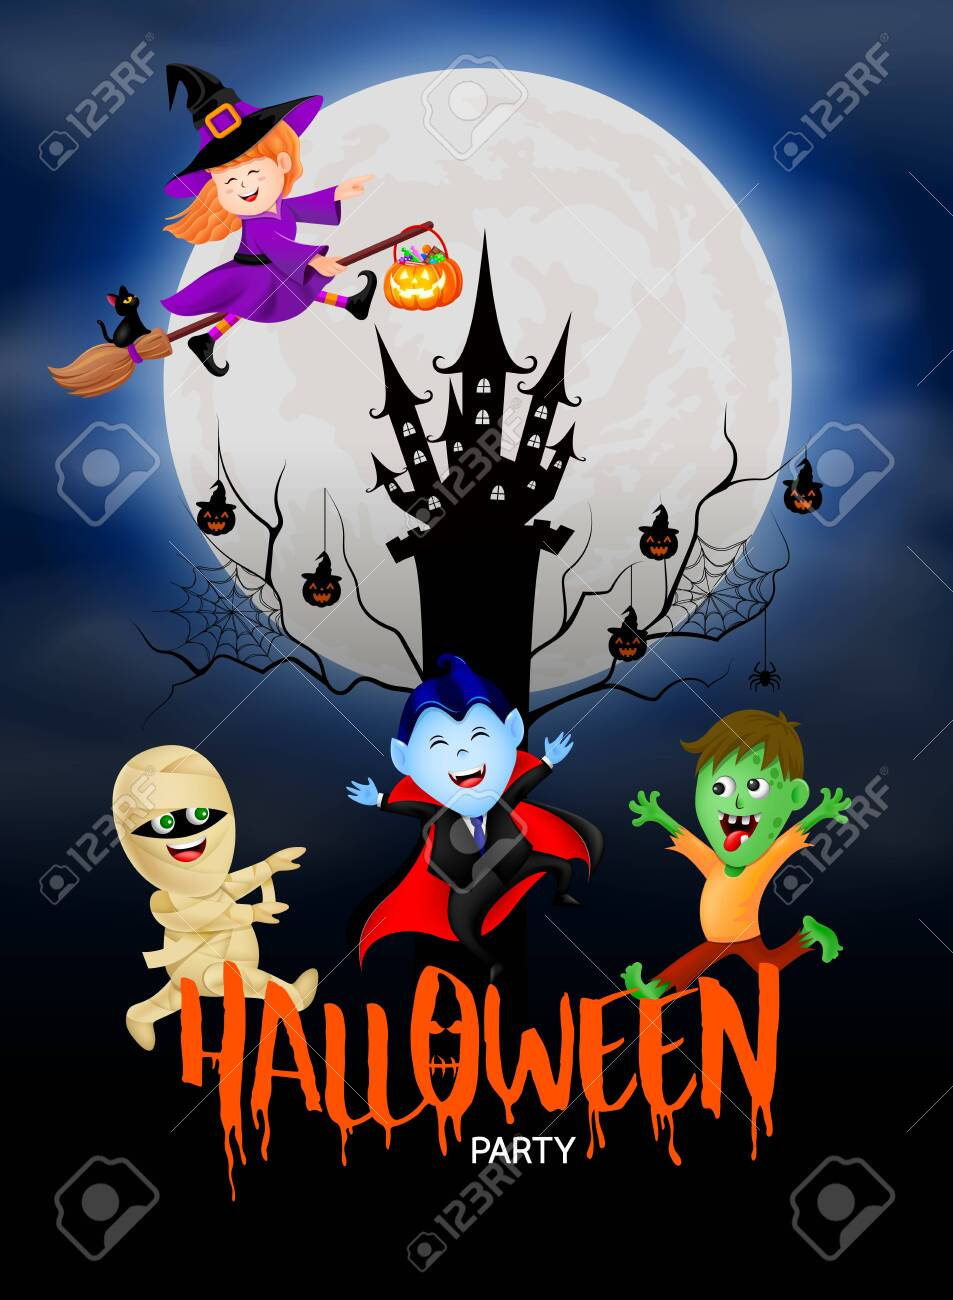 Cute Cartoon Halloween Pictures : cartoon, halloween, pictures, Funny, Cartoon, Character., Witch,, Count, Dracula,, Zombie, And.., Royalty, Cliparts,, Vectors,, Stock, Illustration., Image, 129273301.